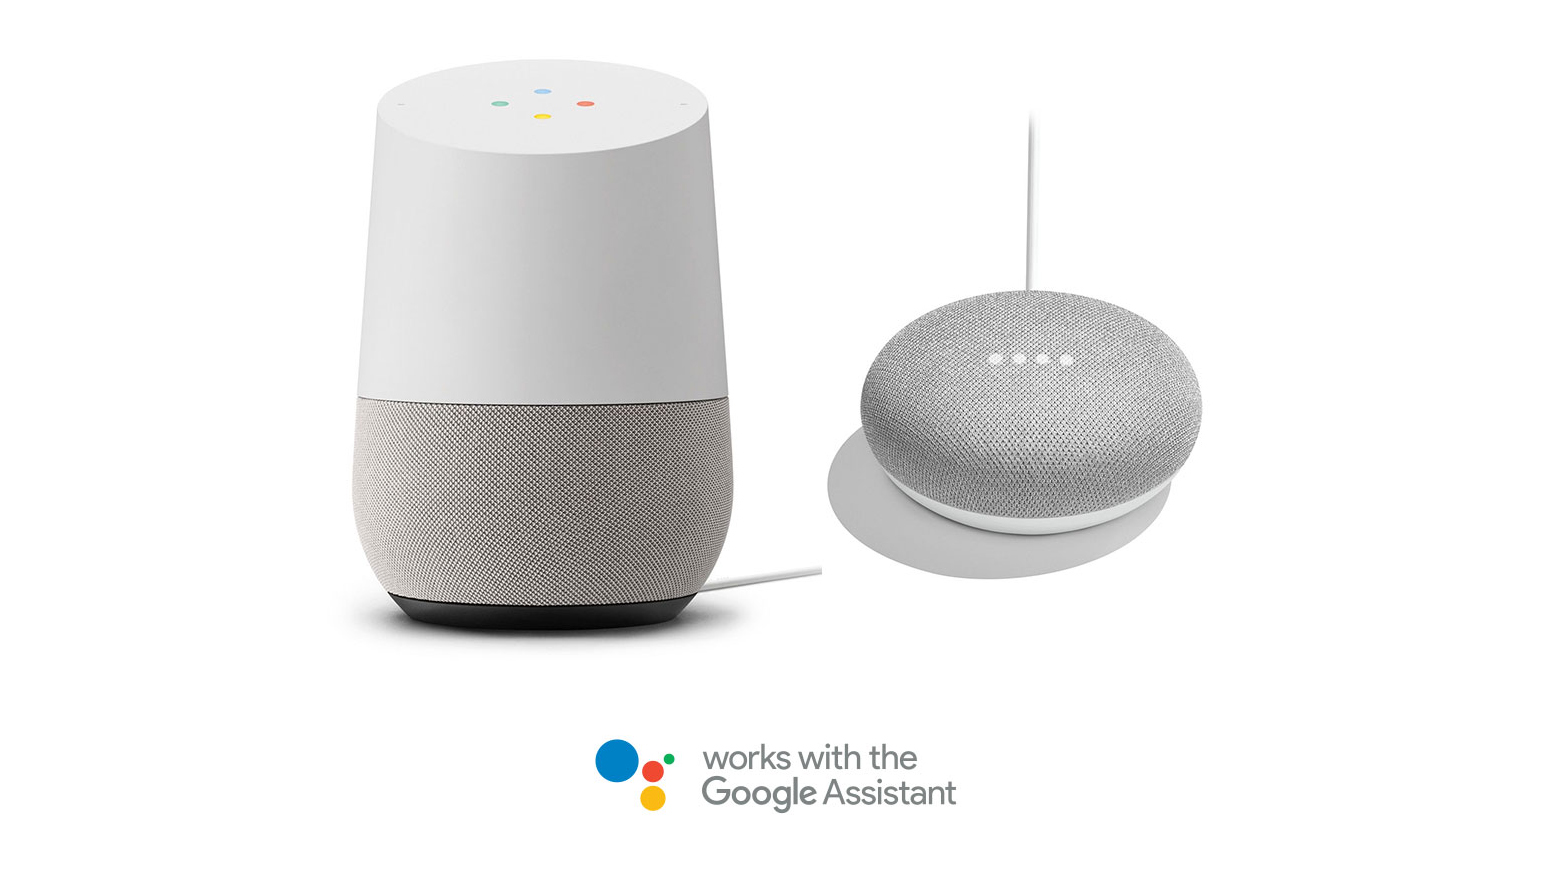 the Google Assistant product line